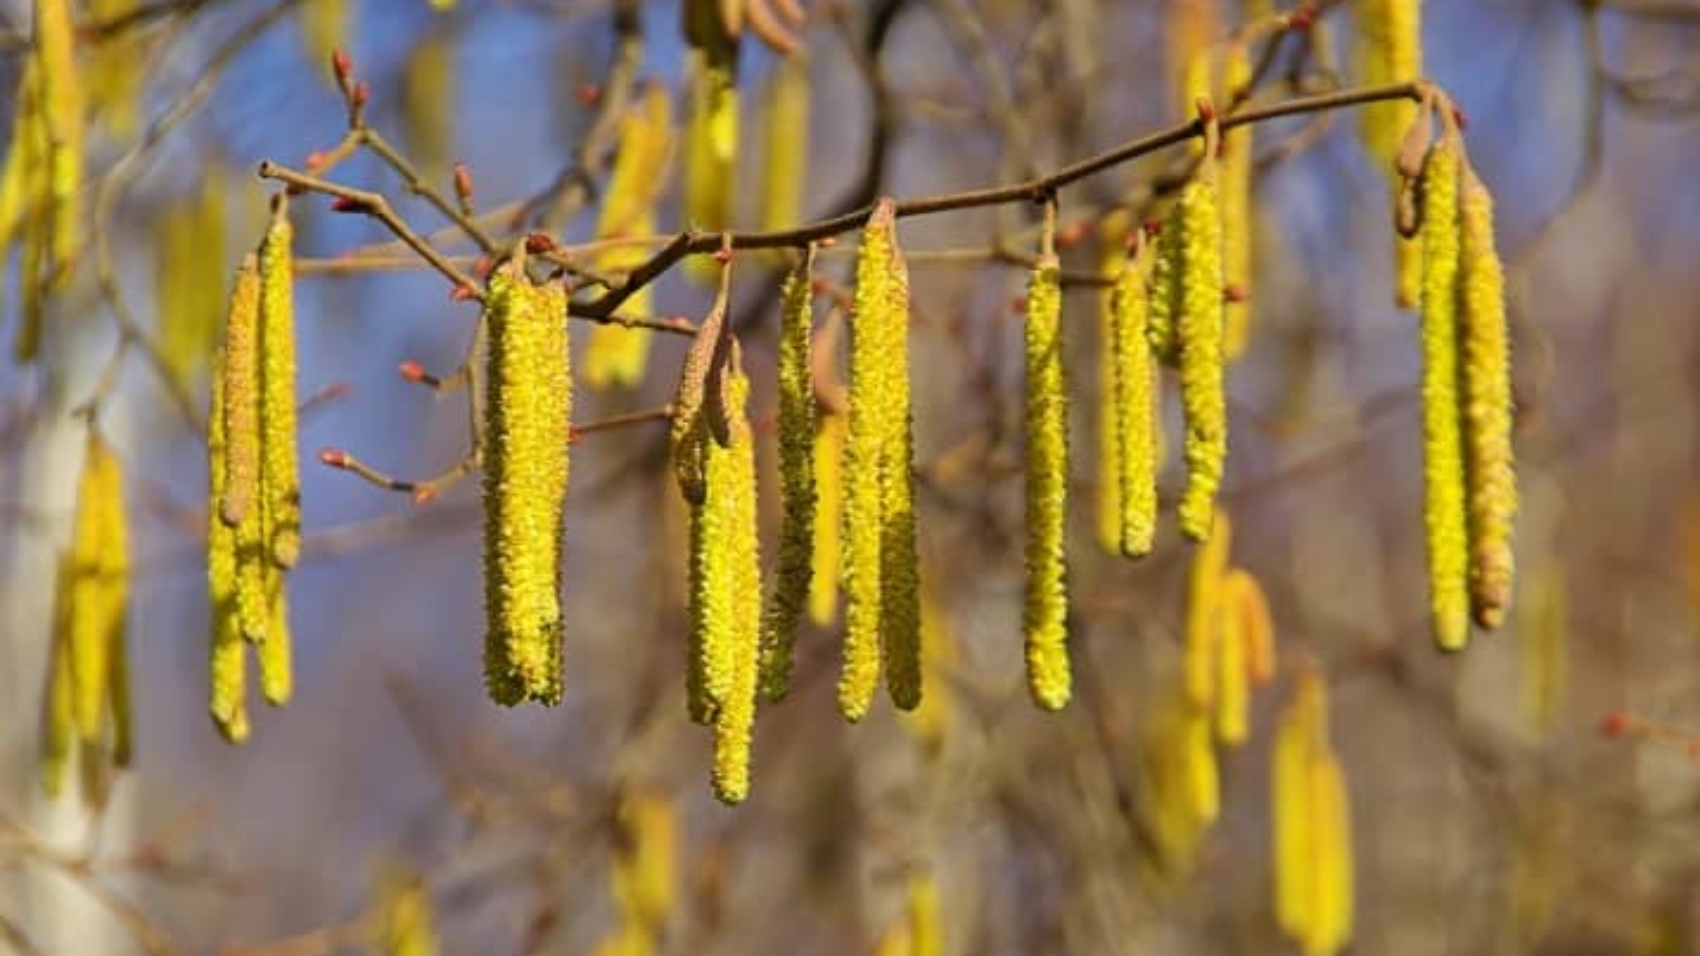 a picture of hazelnut catkins shedding pollenins